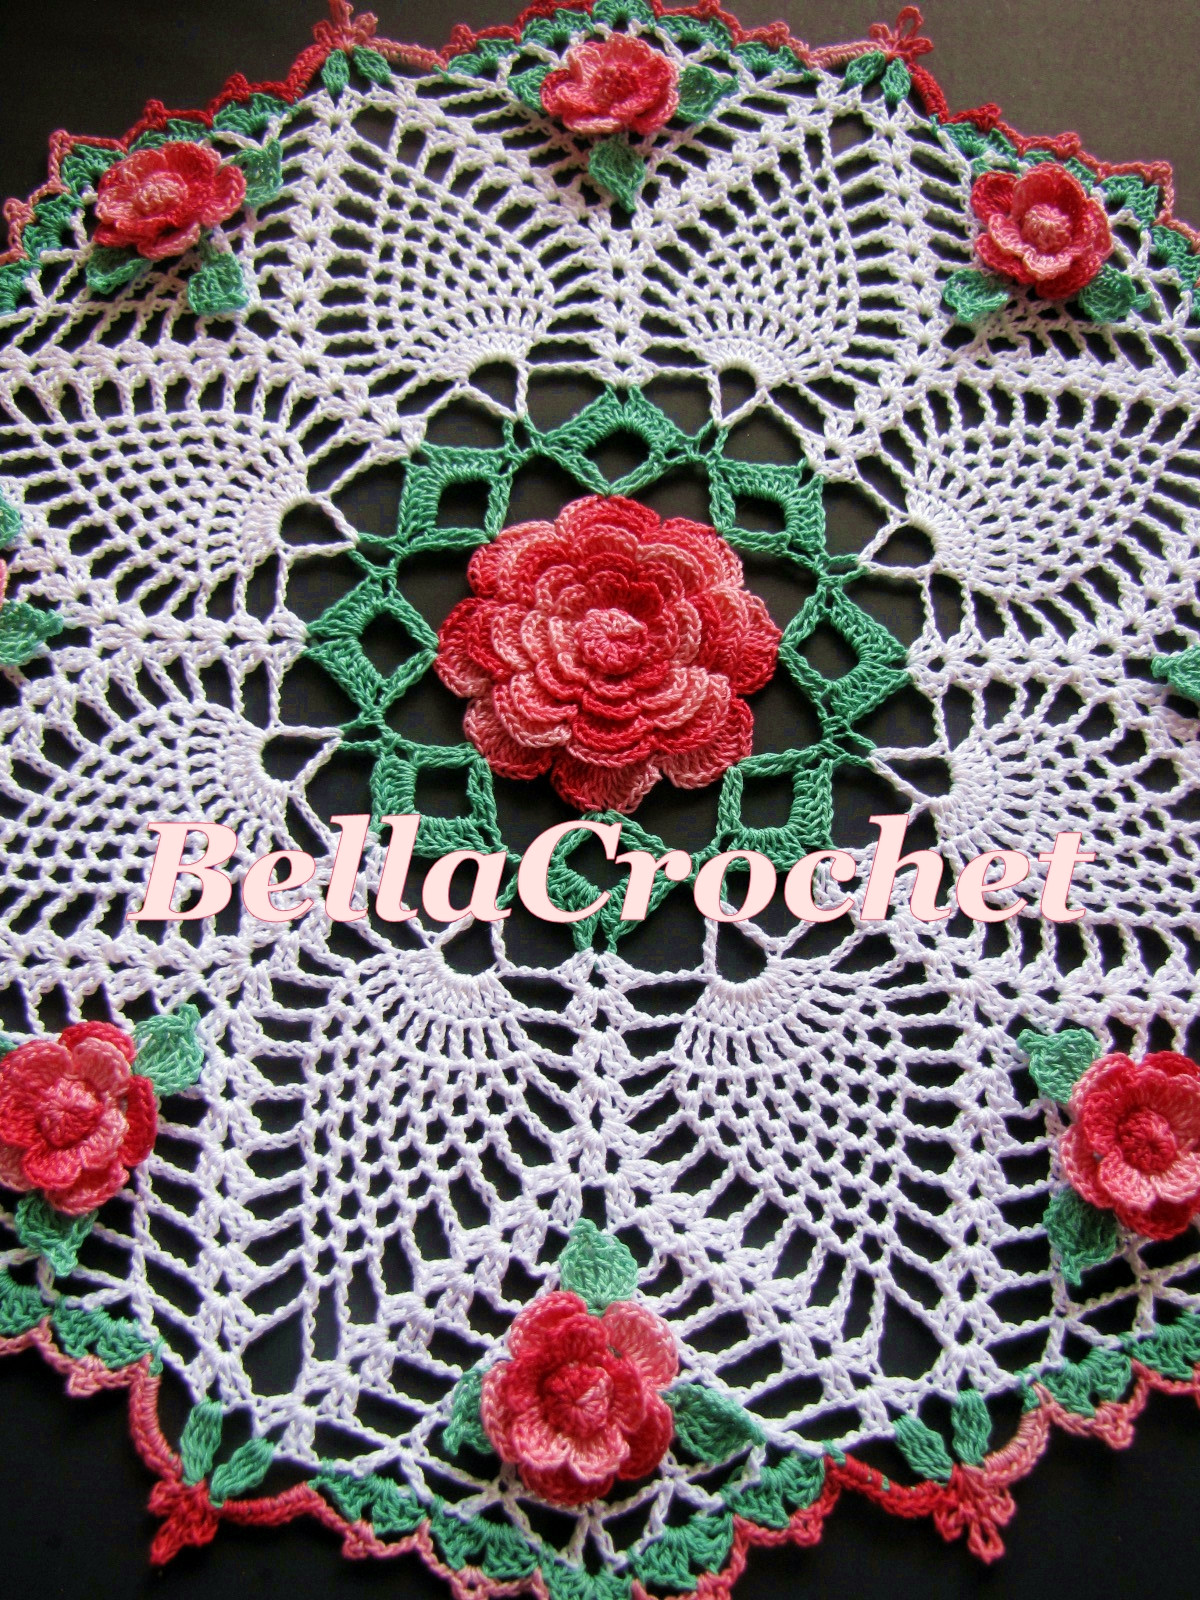 Doily Patterns Best Of Bellacrochet Dorothy S Roses Doily A Free Crochet Of Innovative 50 Models Doily Patterns